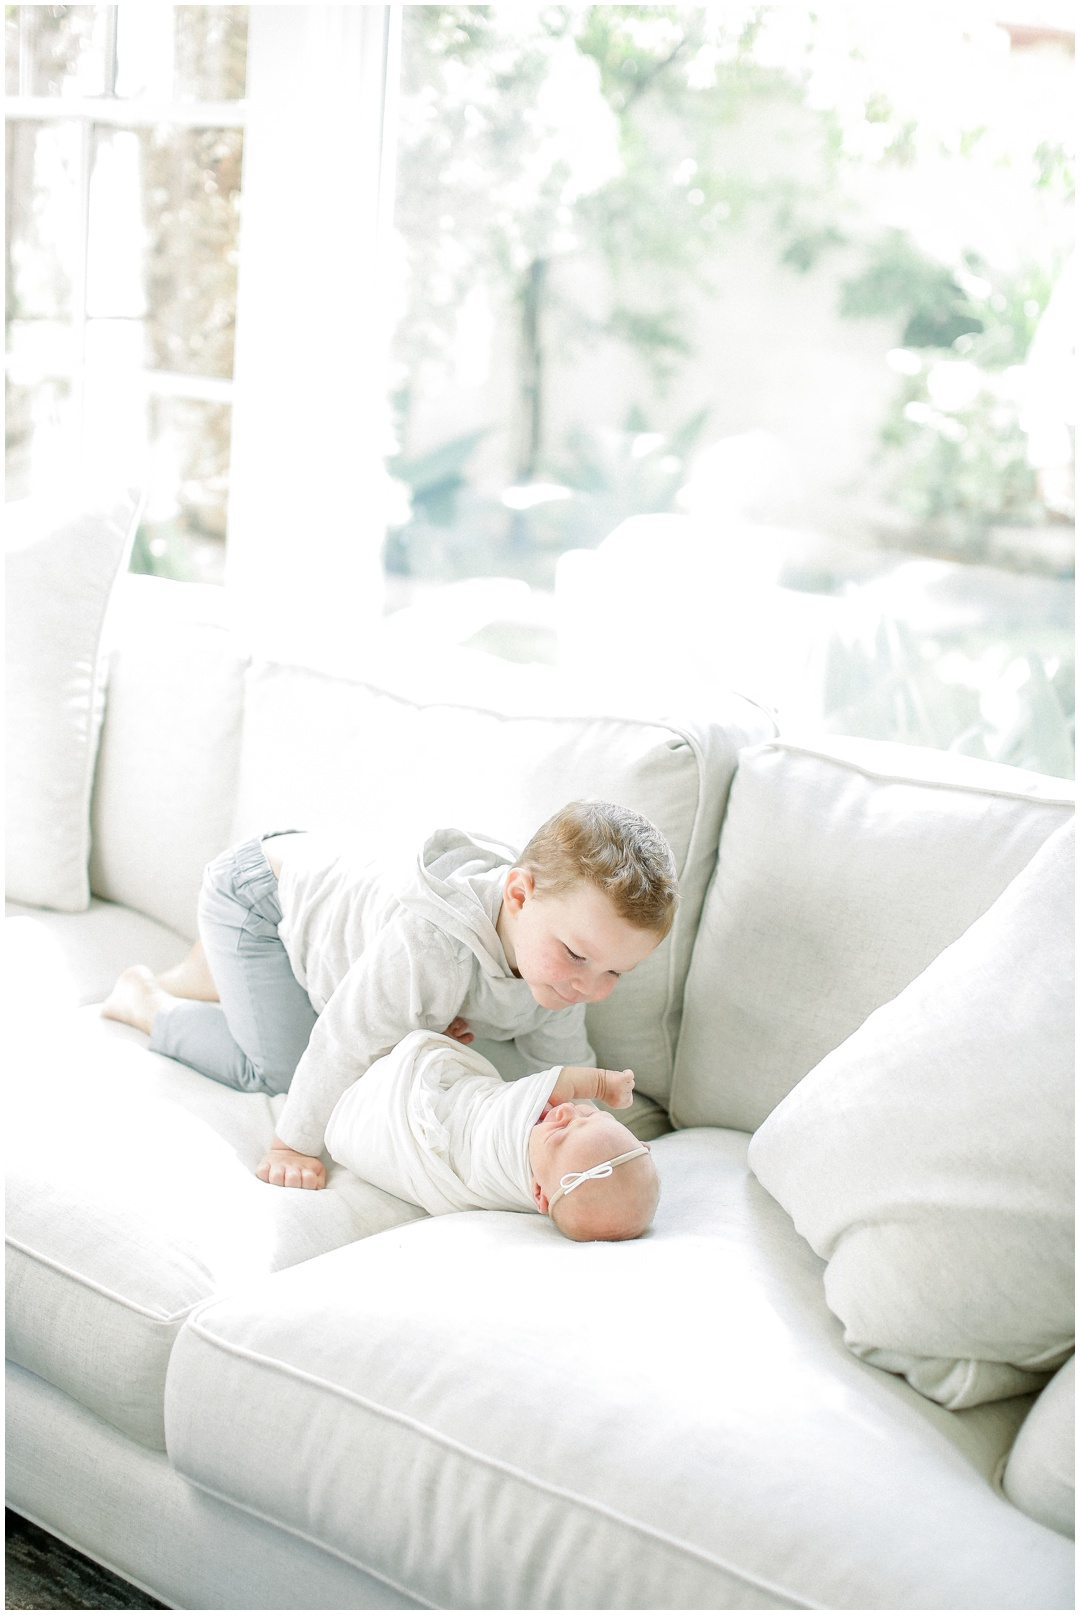 Newport_Beach_Newborn_Light_Airy_Natural_Photographer_Newport_Beach_Photographer_Orange_County_Family_Photographer_Cori_Kleckner_Photography_Newport_Beach_Photographer_newborn_kole_calhoun56_kole_calhoun_Jennifer_Calhoun_Knox_Calhoun_3798.jpg